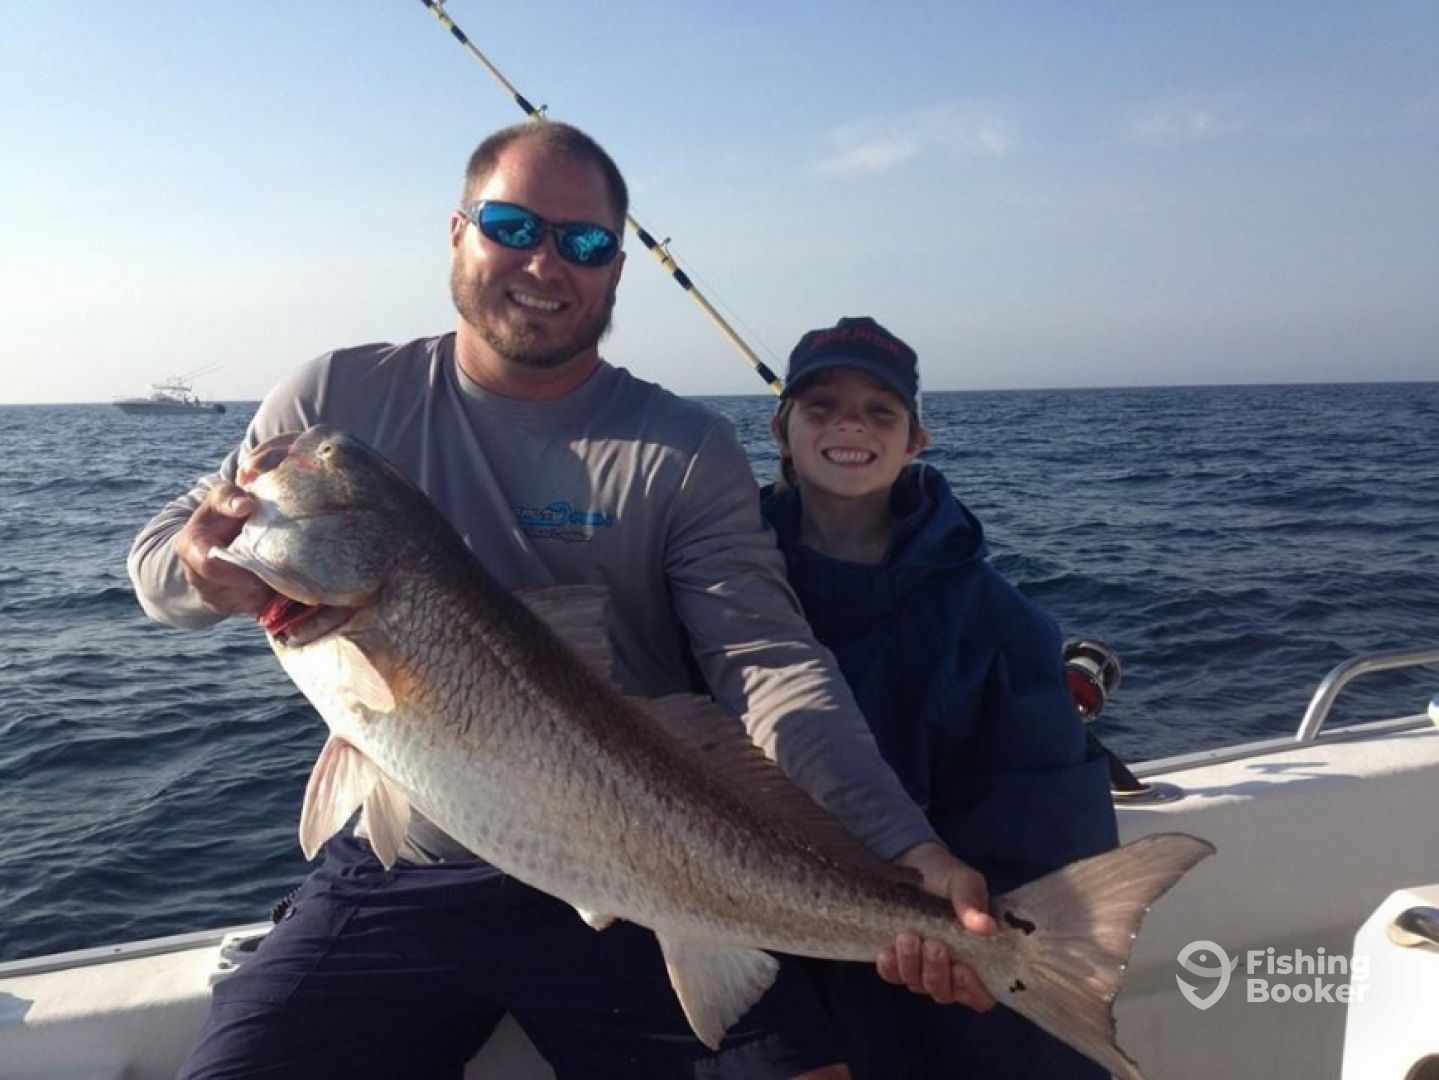 Salty fish coastal outfitters fort walton beach fl for Fort walton beach fishing charters